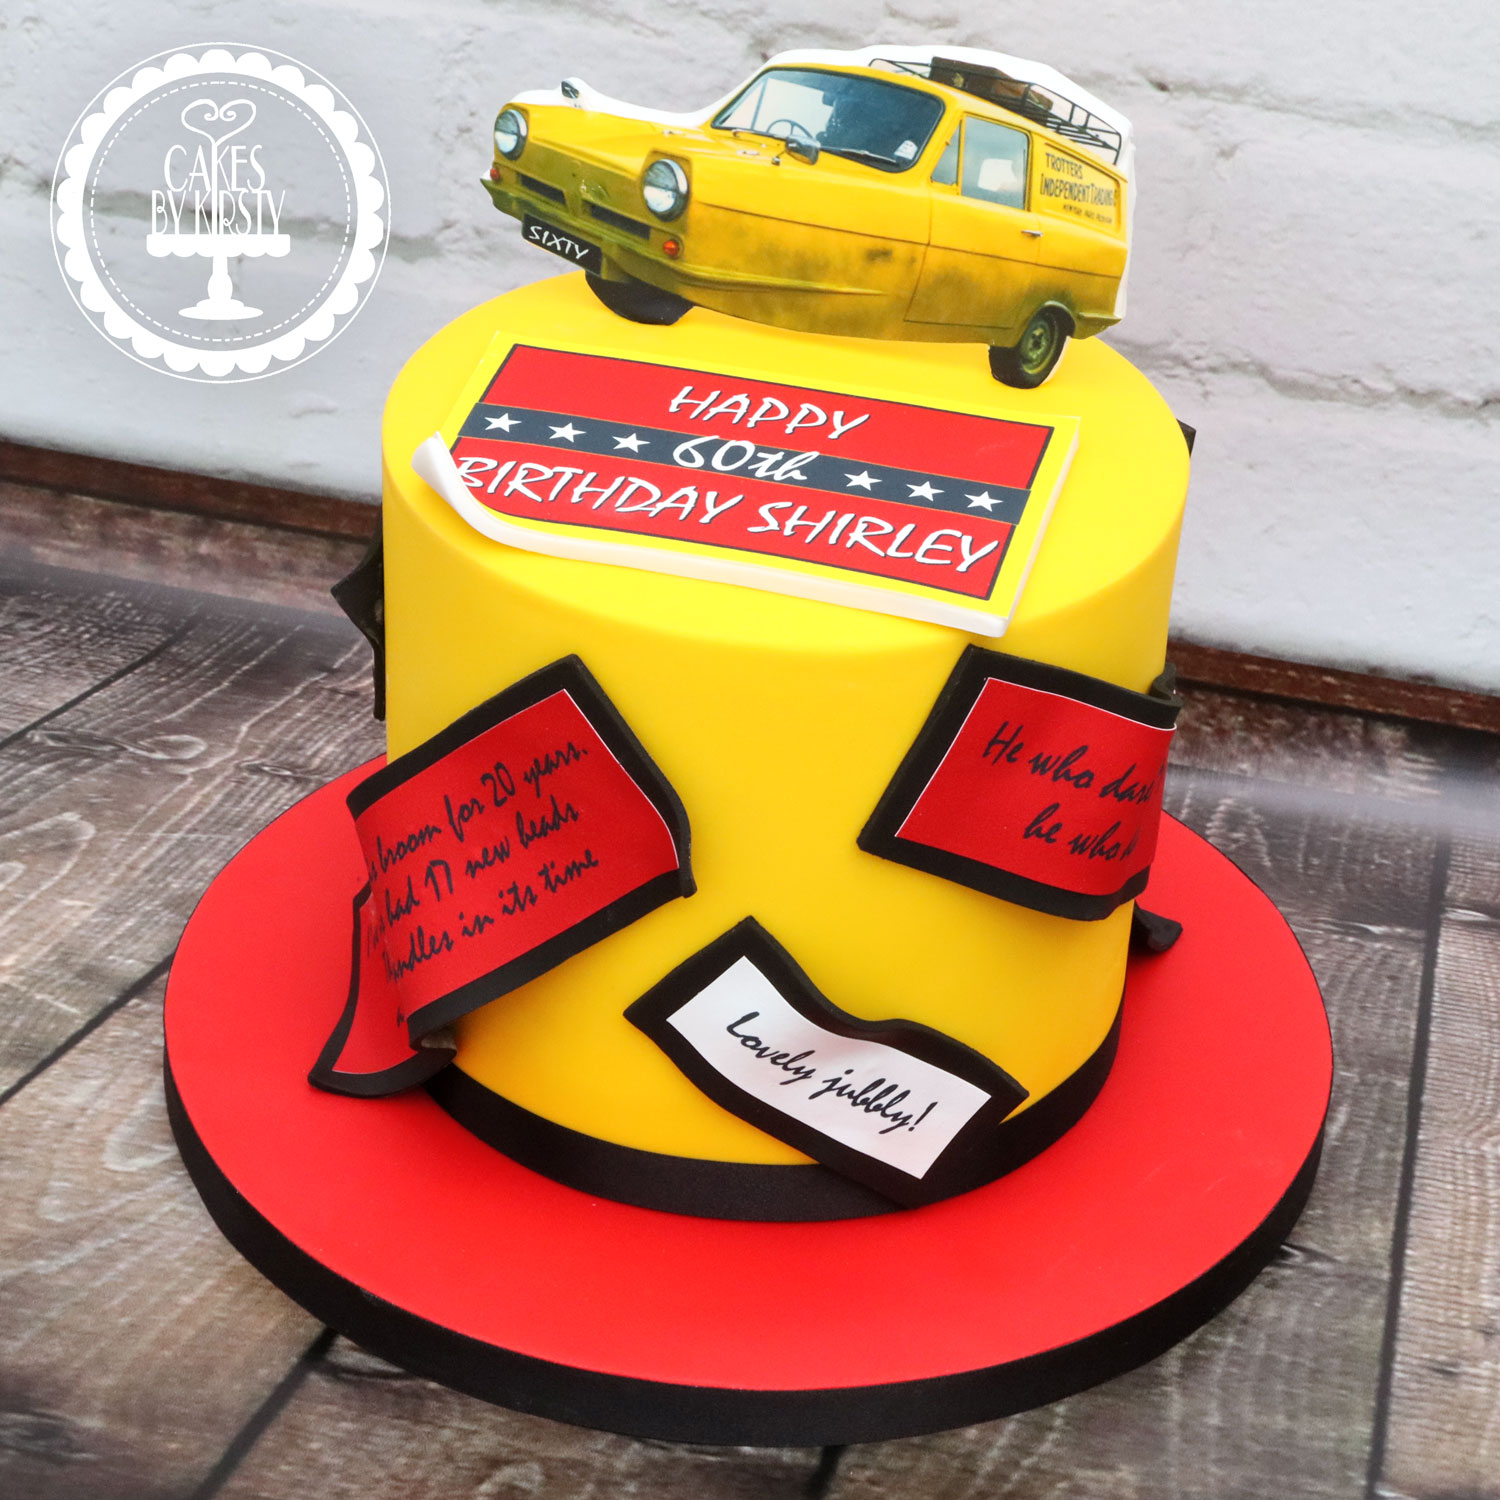 20201113 - Only Fools and Horses Cake